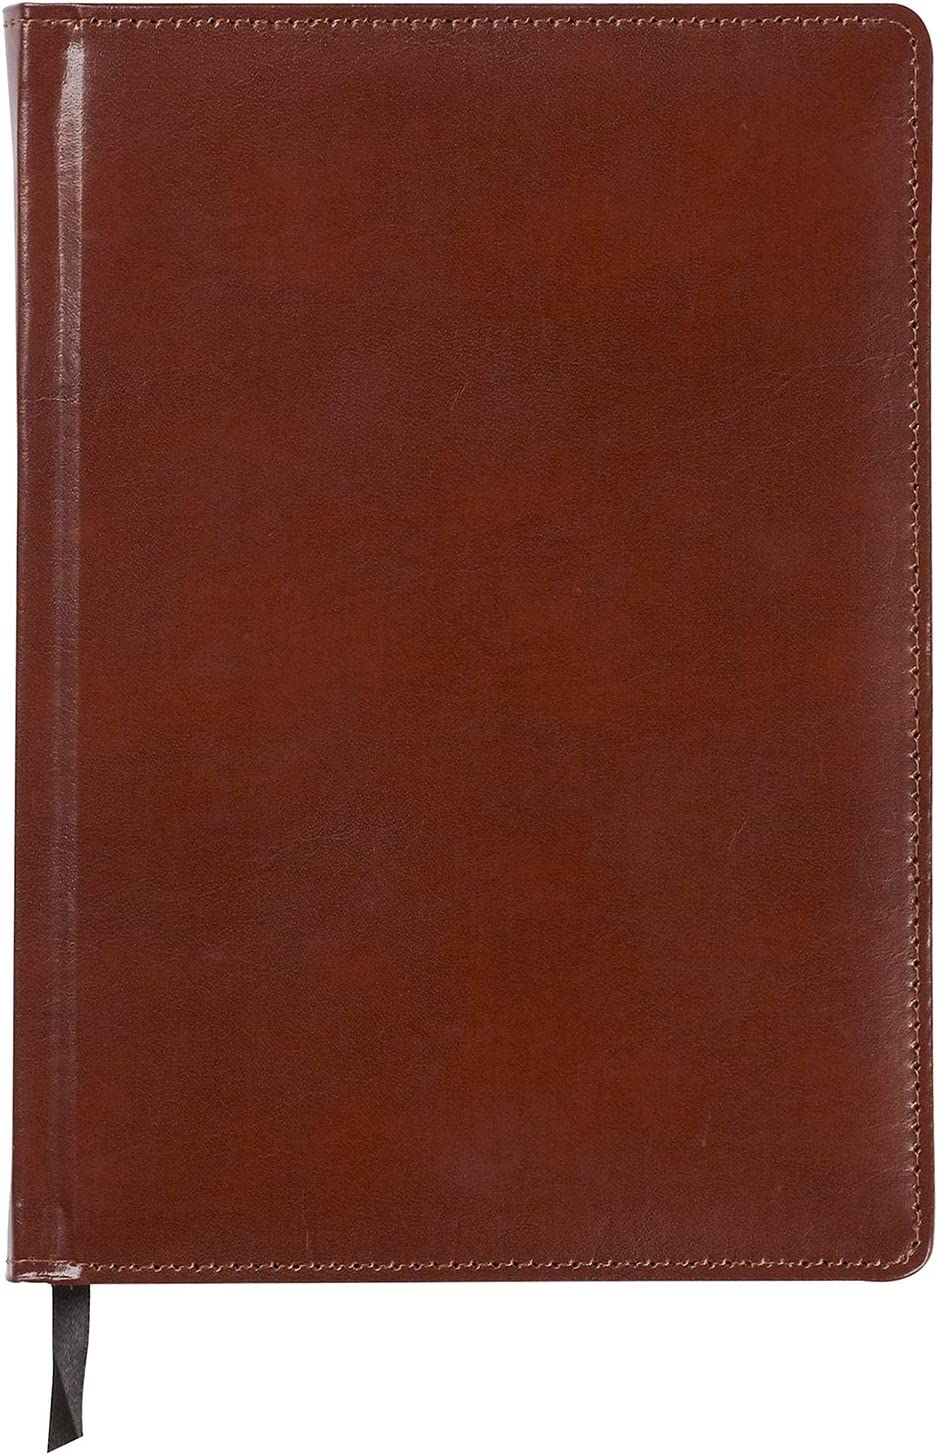 C.R. Gibson Large Brown Leather Journal Notebook x Max 71% OFF 6.5'' 9'' 1 Max 84% OFF